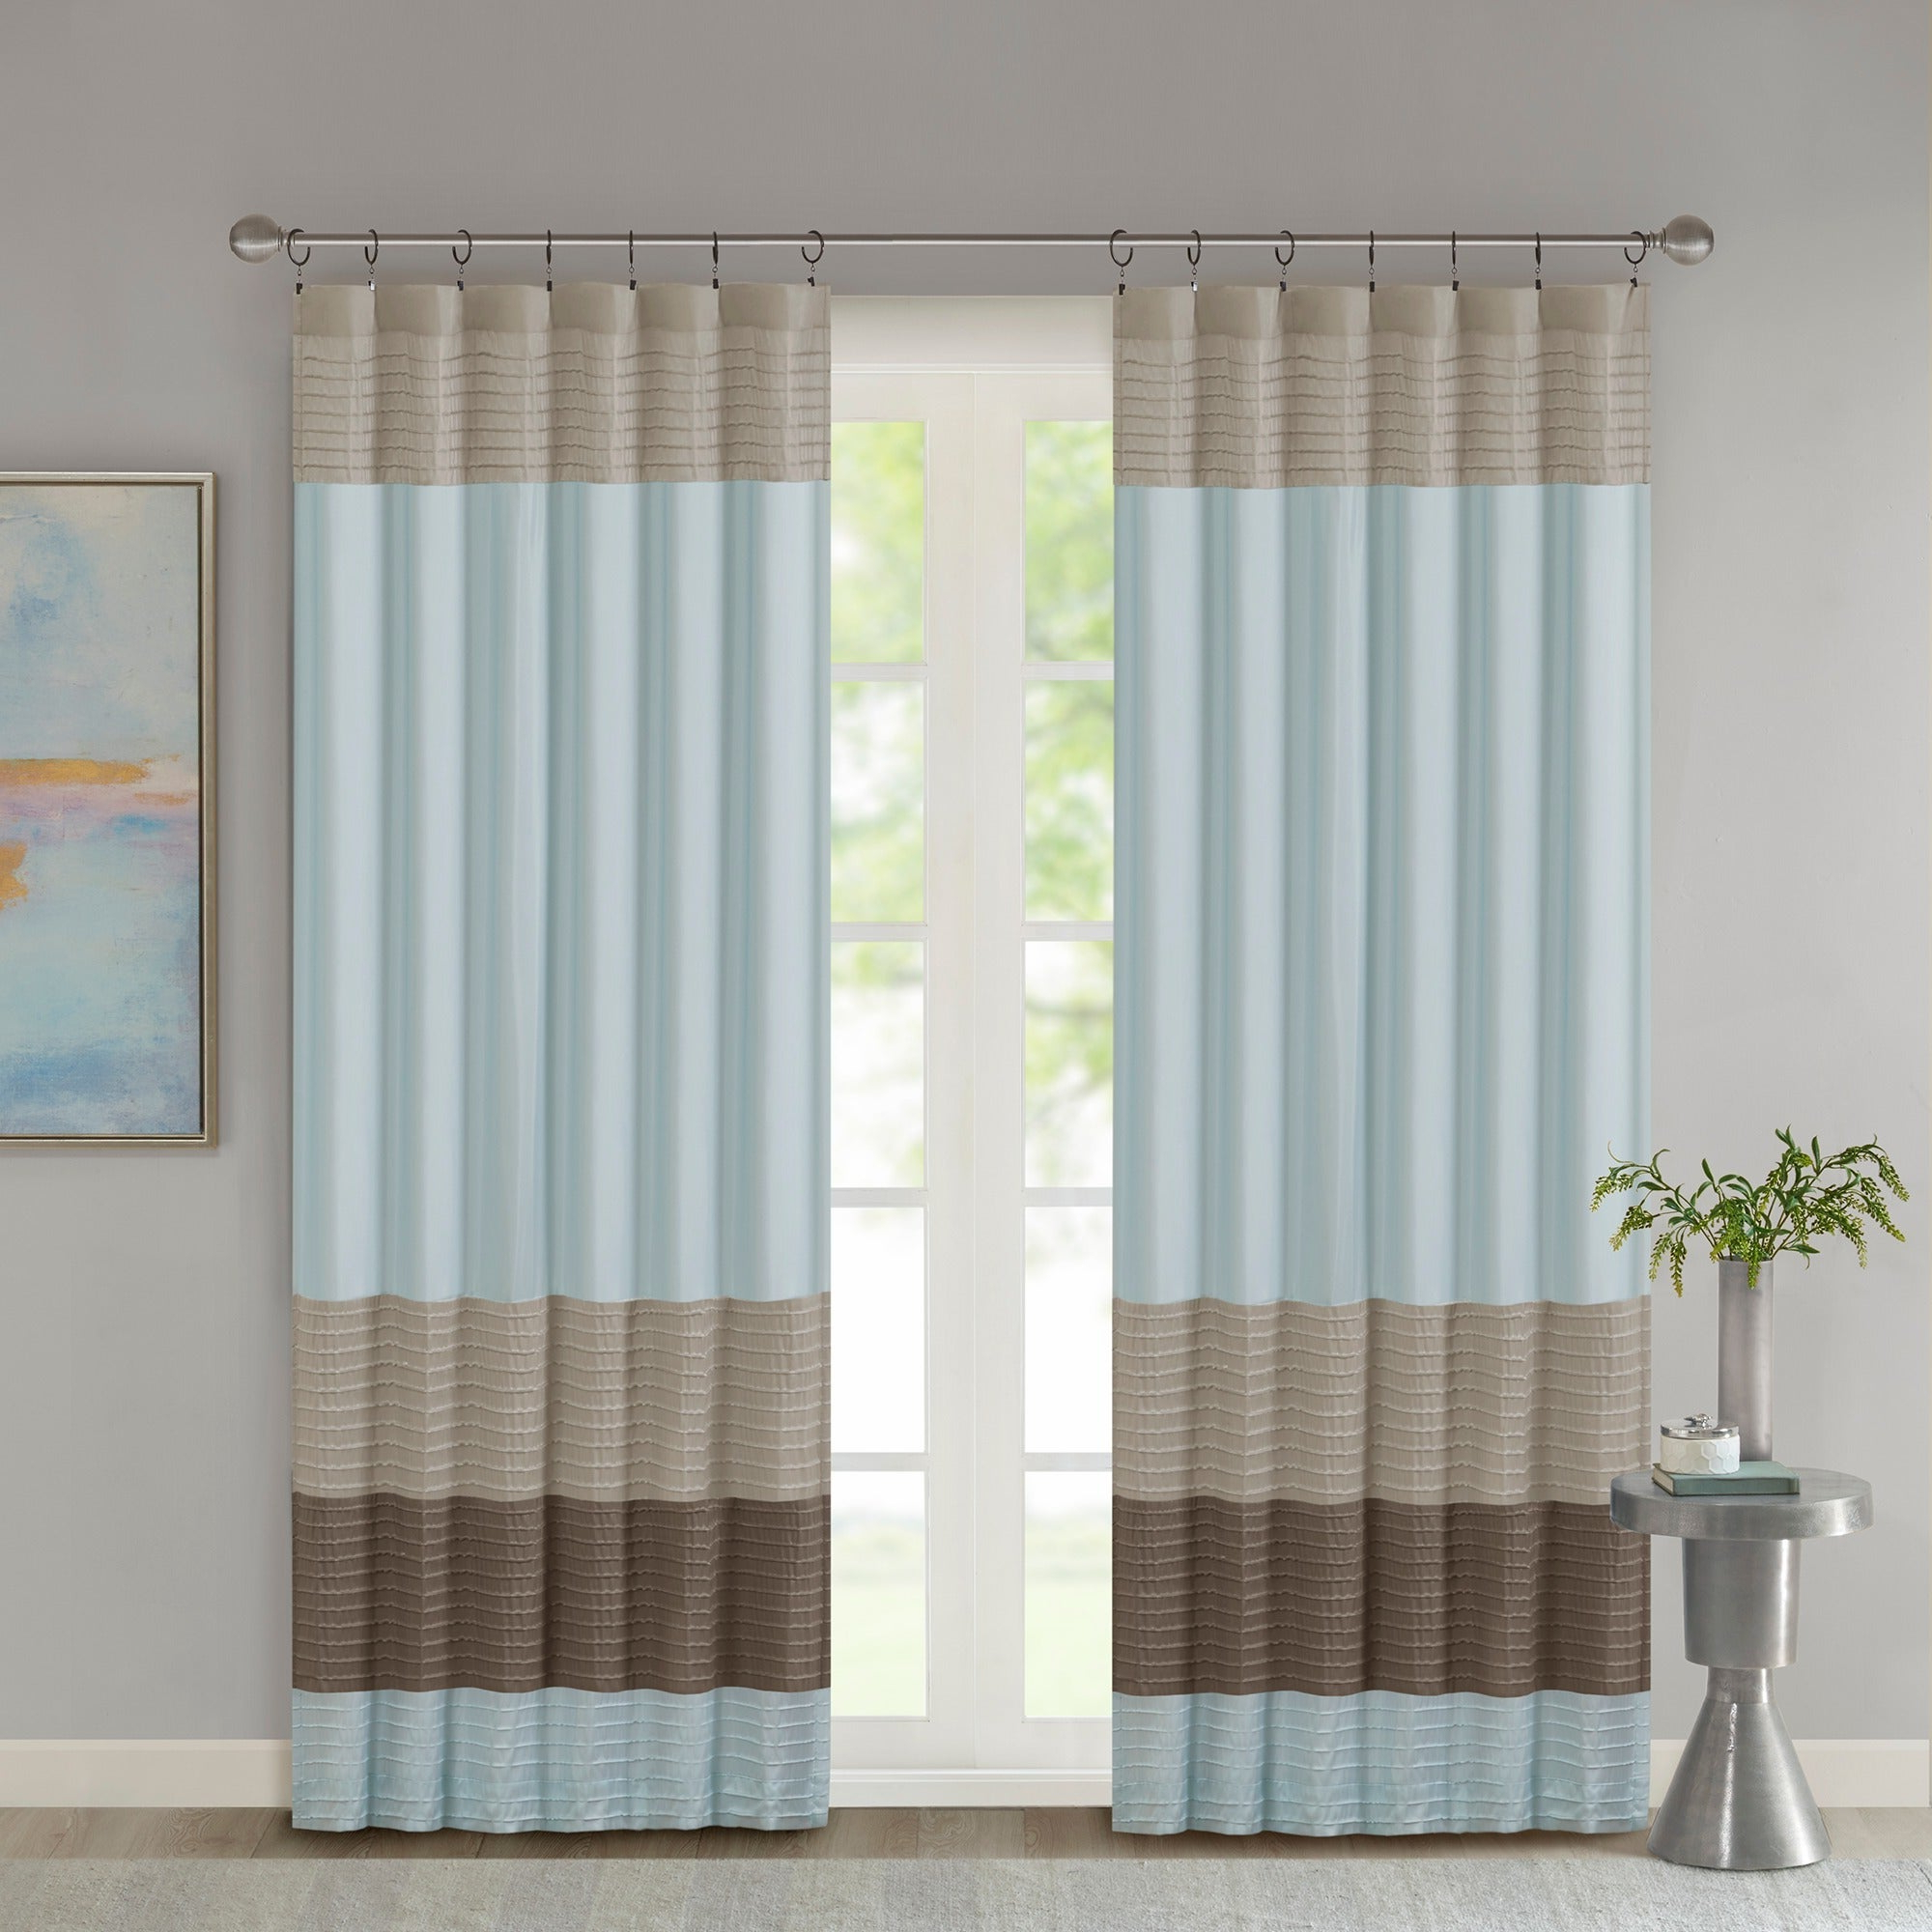 Most Recently Released Chester Polyoni Pintuck Curtain Panels In Madison Park Tradewinds Polyoni Pintuck Single Curtain Panel – 50 X  (View 16 of 20)